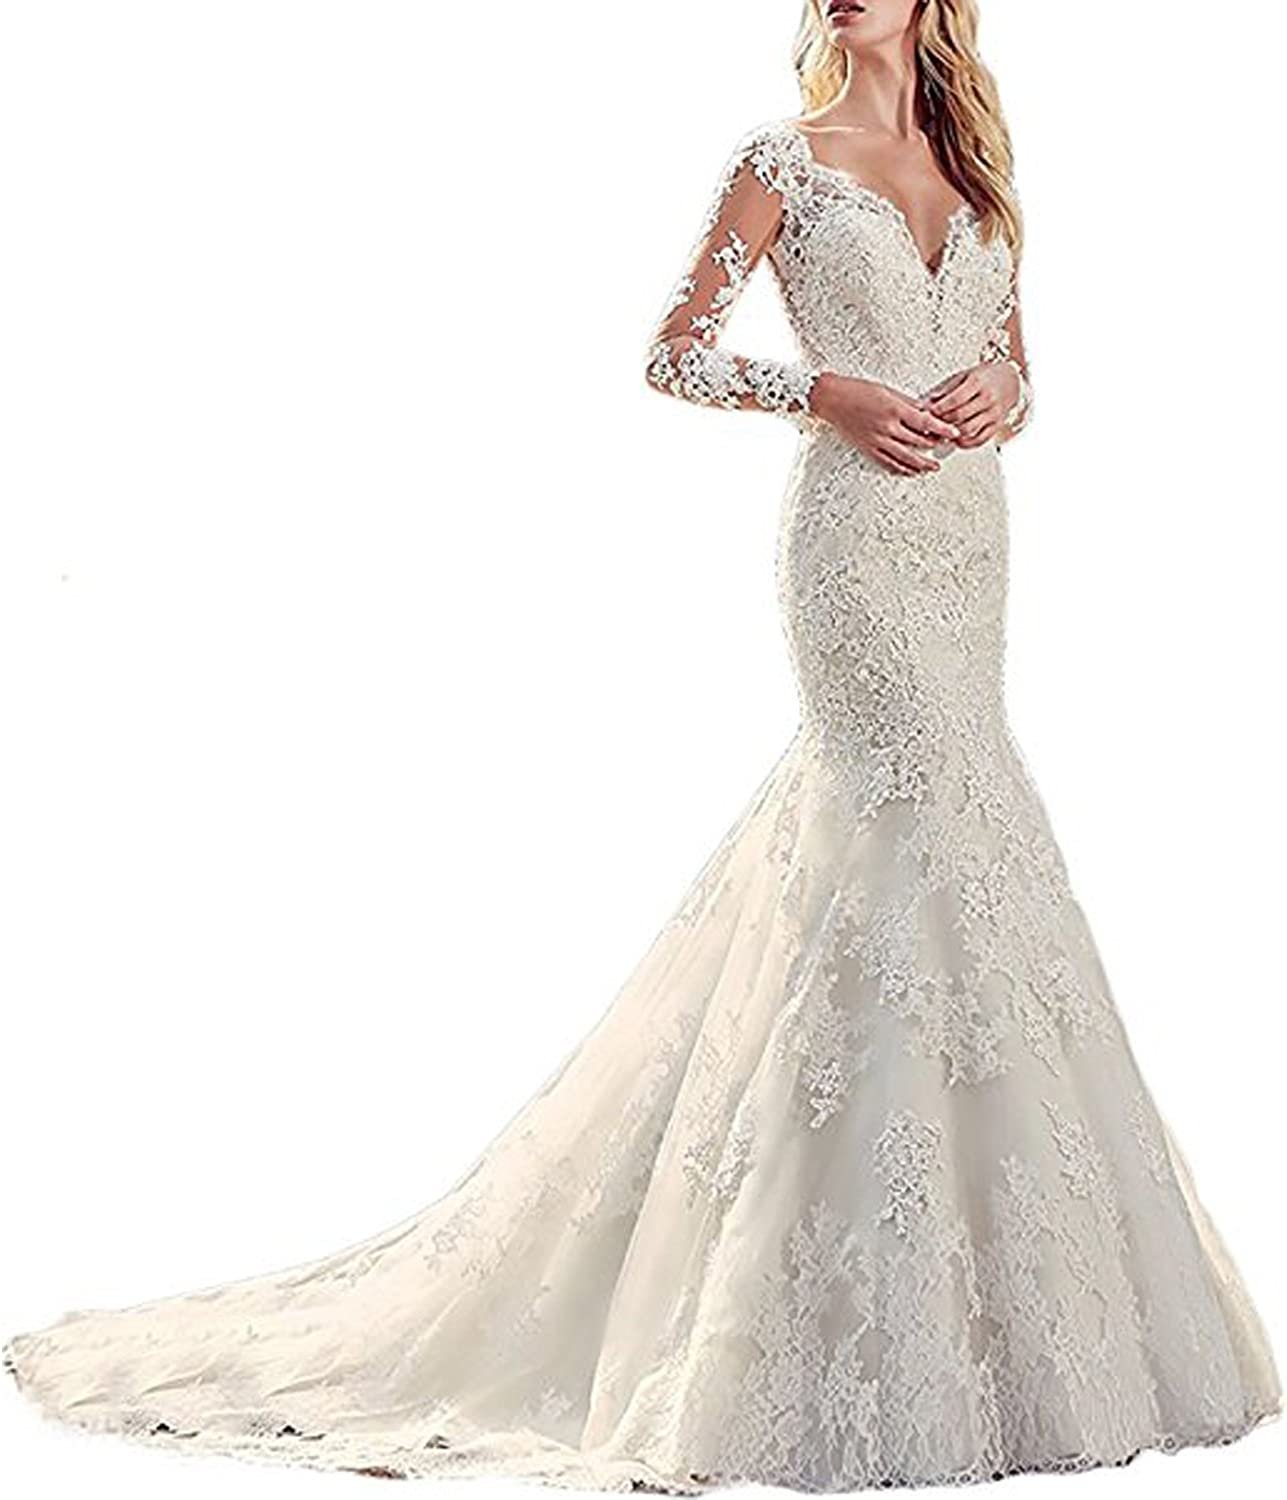 WeddingDazzle Womnes Lace Appliques Beaded Mermaid Wedding Dress 2018 Bridal Gowns